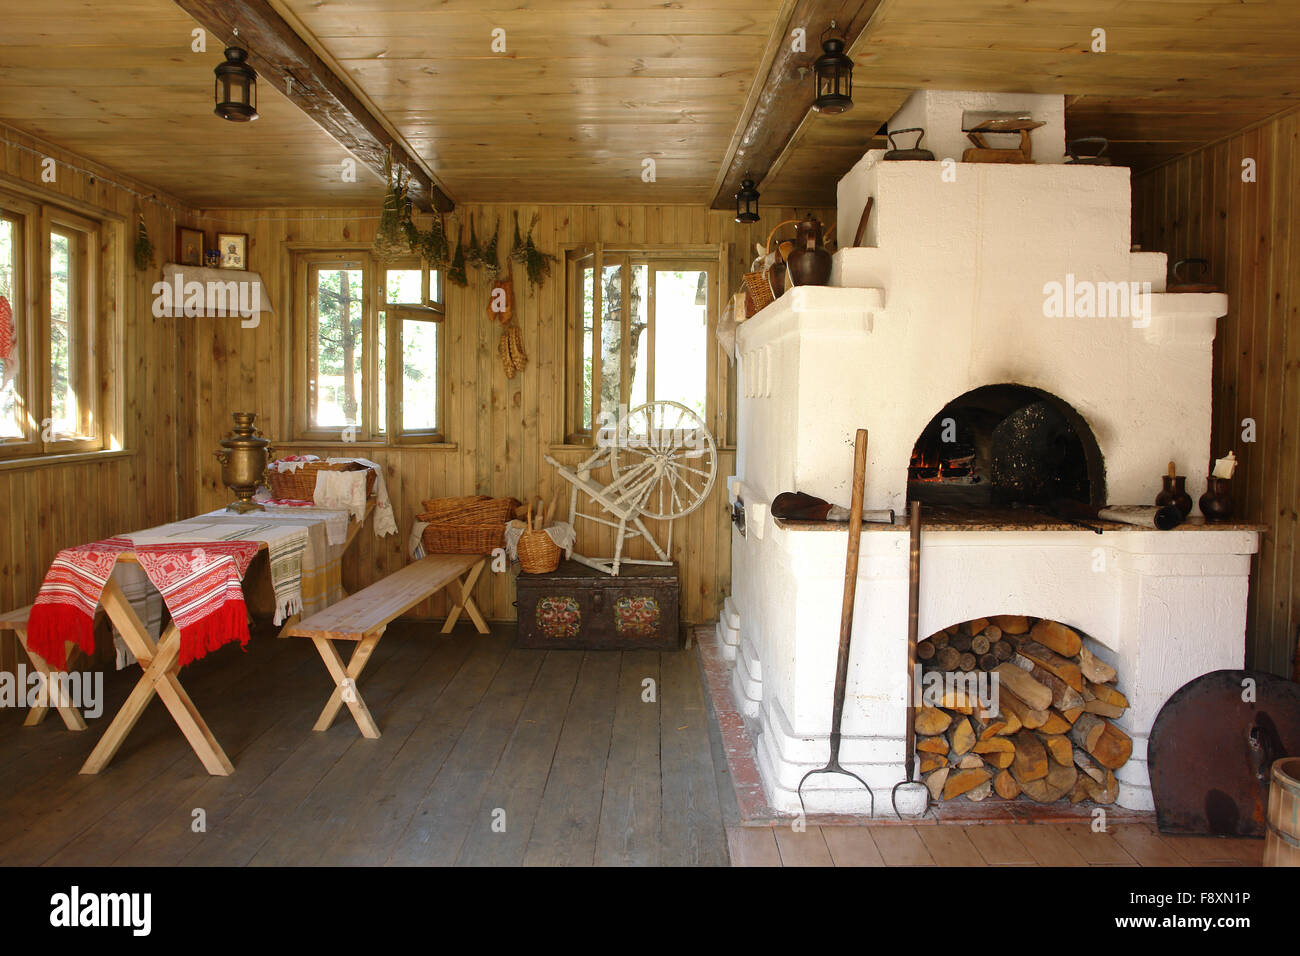 Interior of russian house with traditional oven - Stock Image